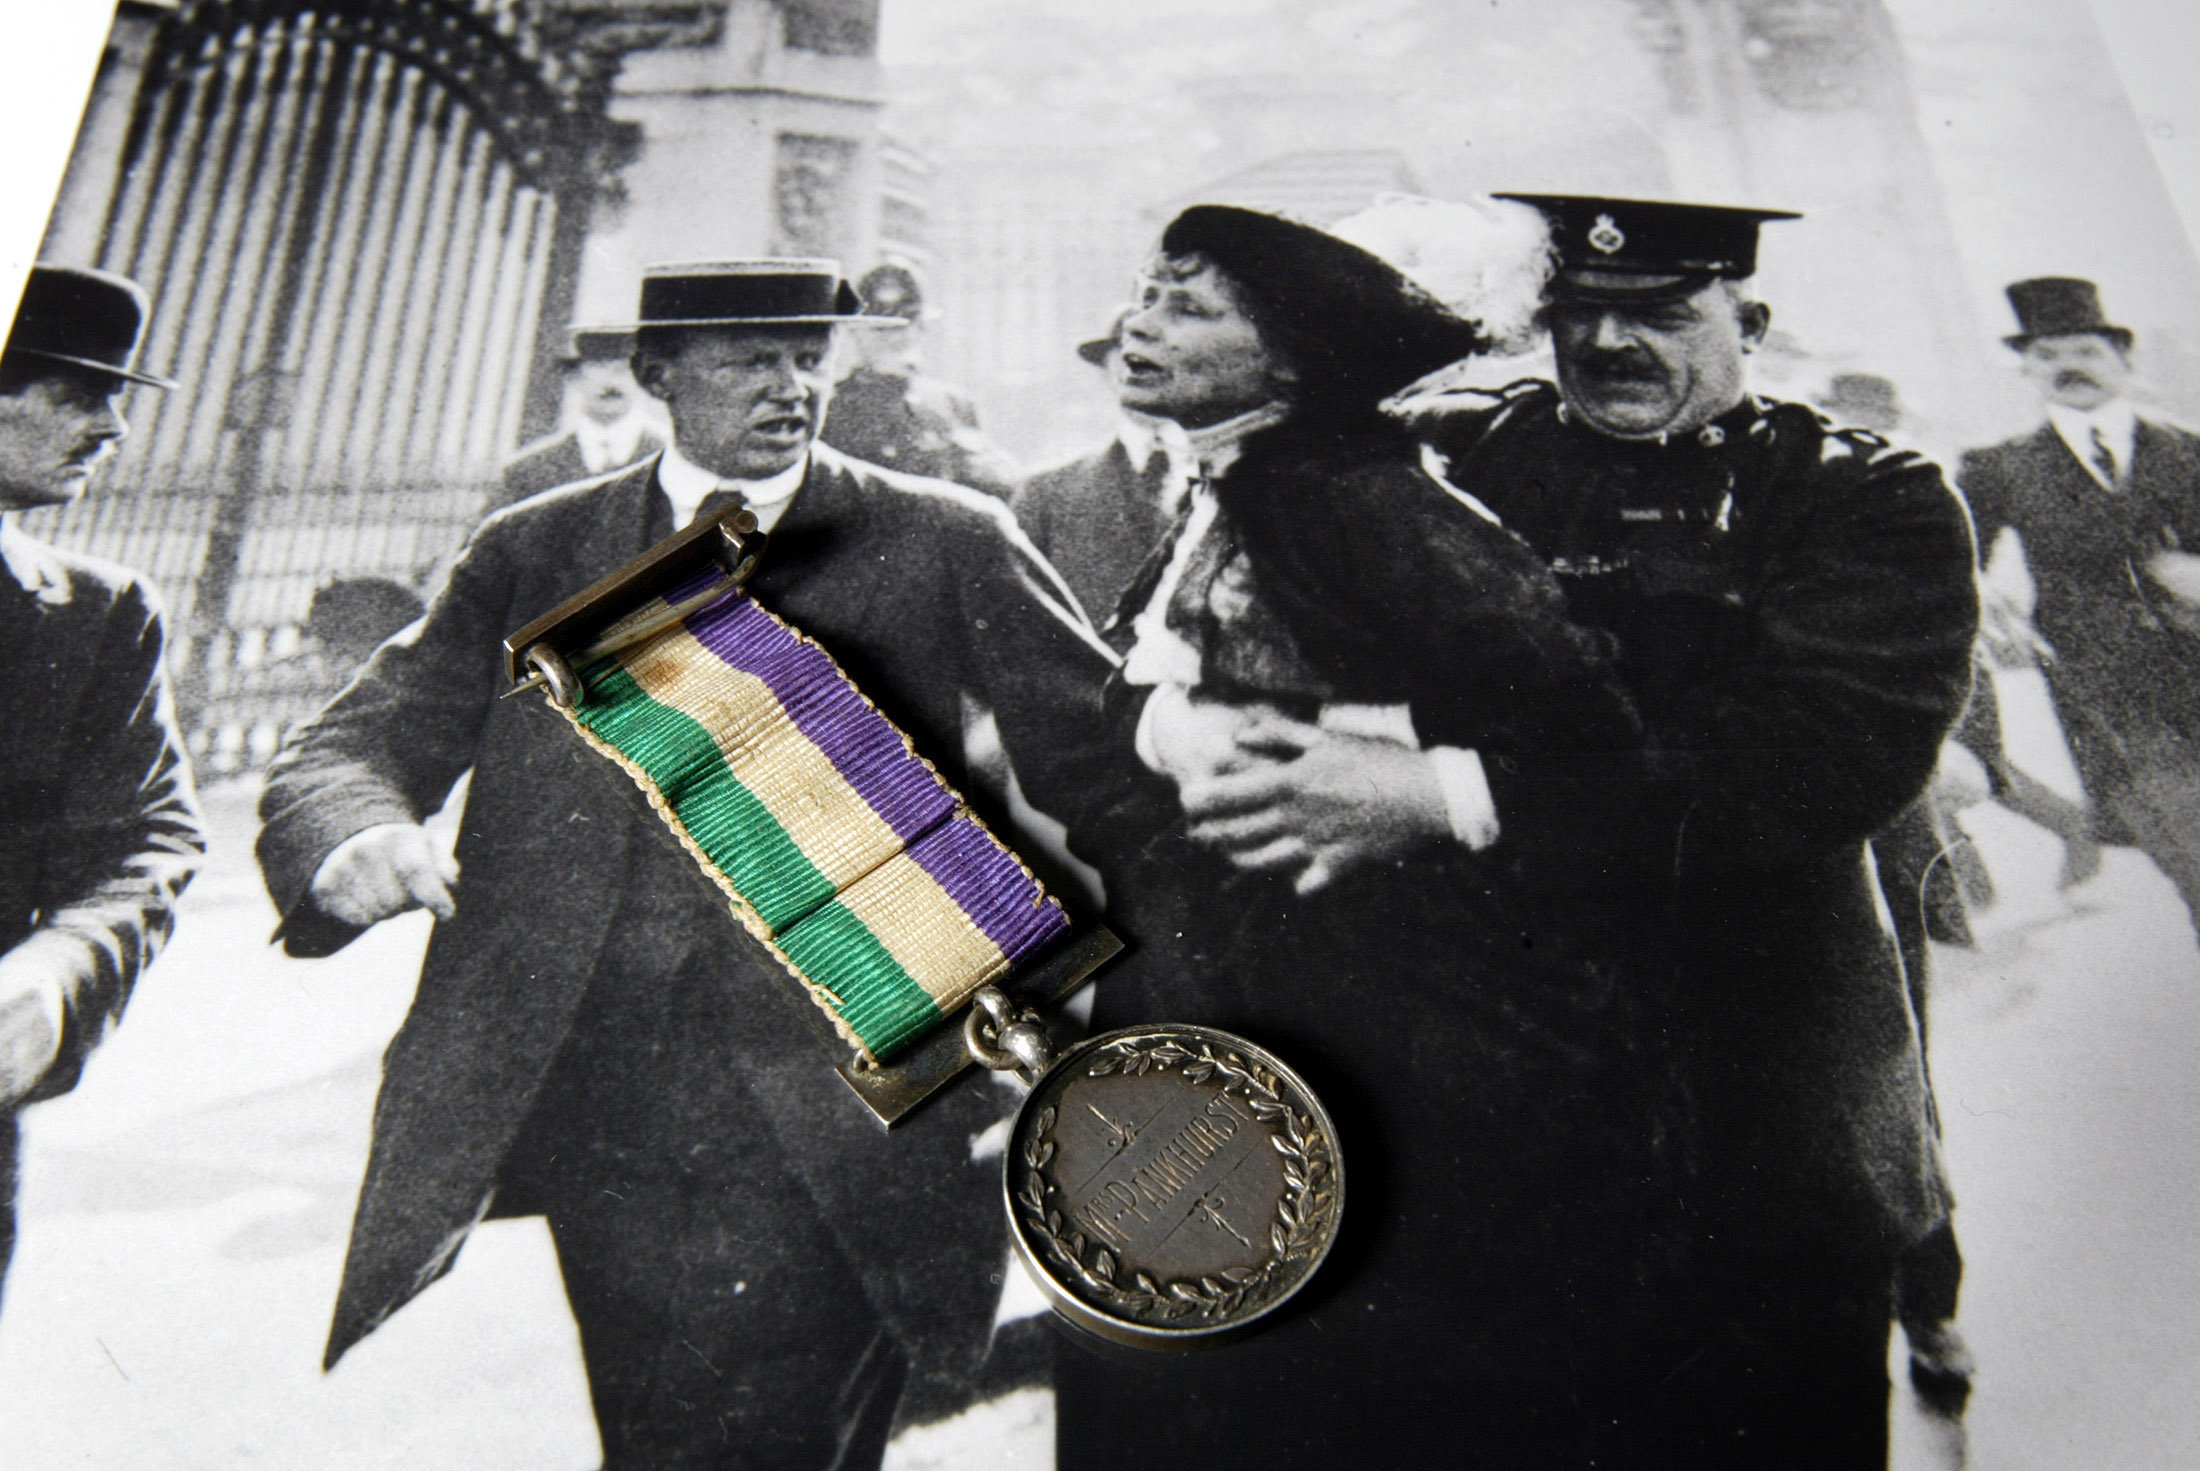 My Great-Grandmother Emmeline Pankhurst Marched 100 Years Ago – And I'm Still Marching Today